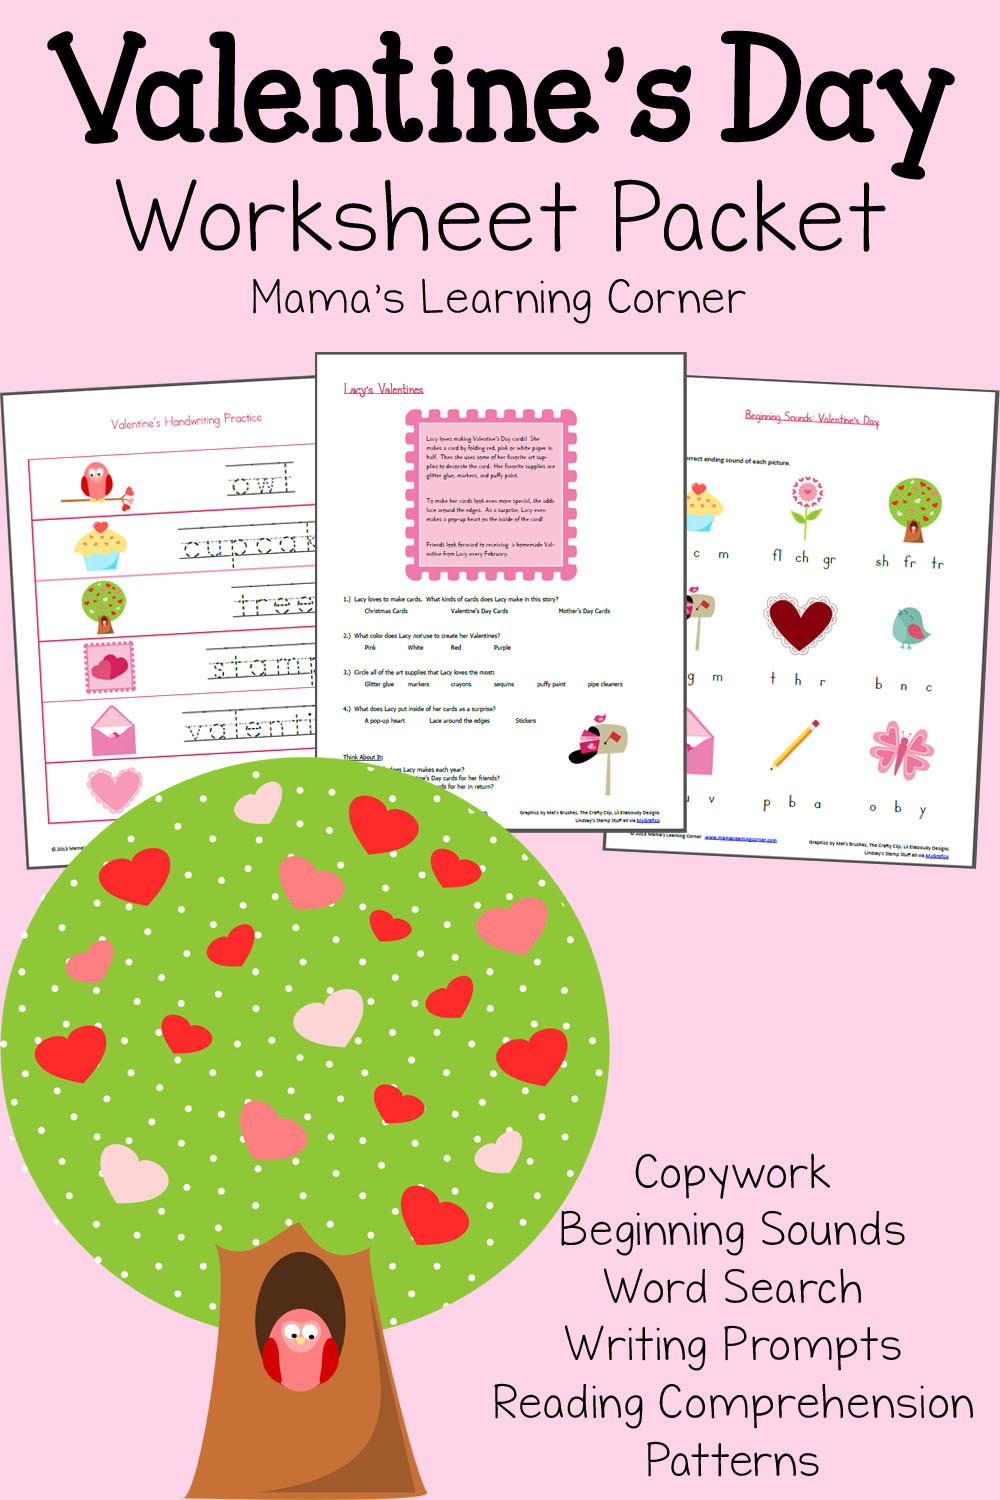 Valentines Day Reading Comprehension Worksheets Valentine S Day Worksheet Packet Mamas Learning Corner